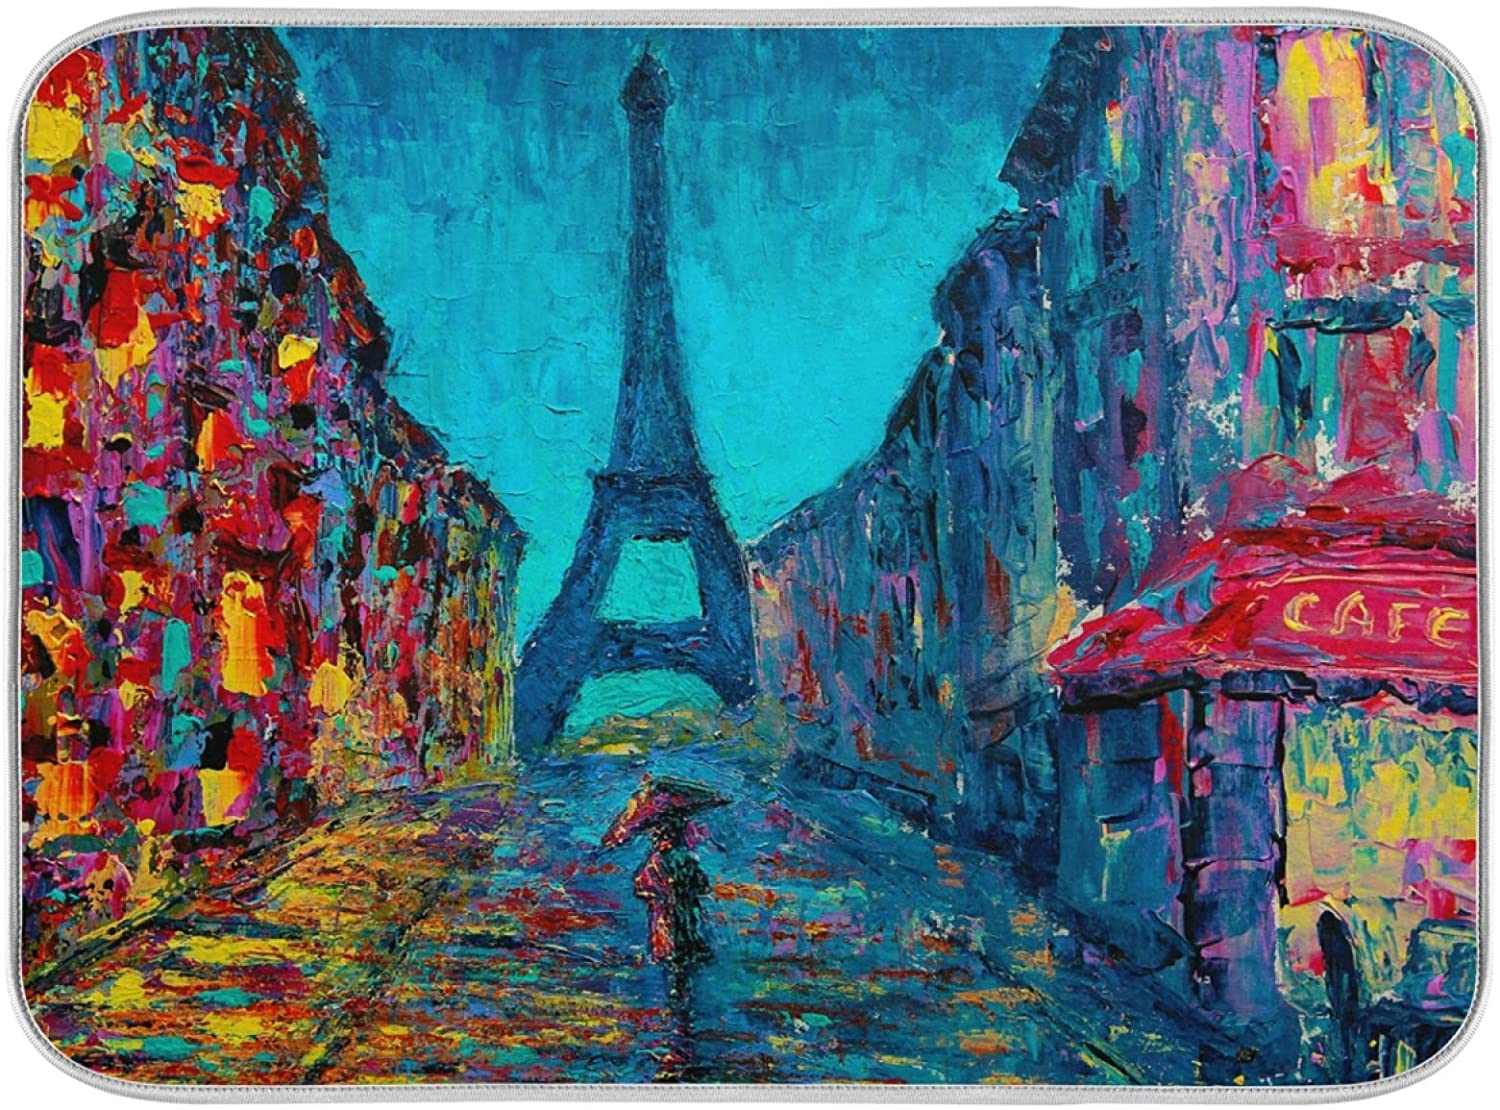 Dish Drying Mat for Kitchen Paris Art Oil Painting Absorbent Heat Resistant Dishes Drainer Pad 16 x 18 Inch